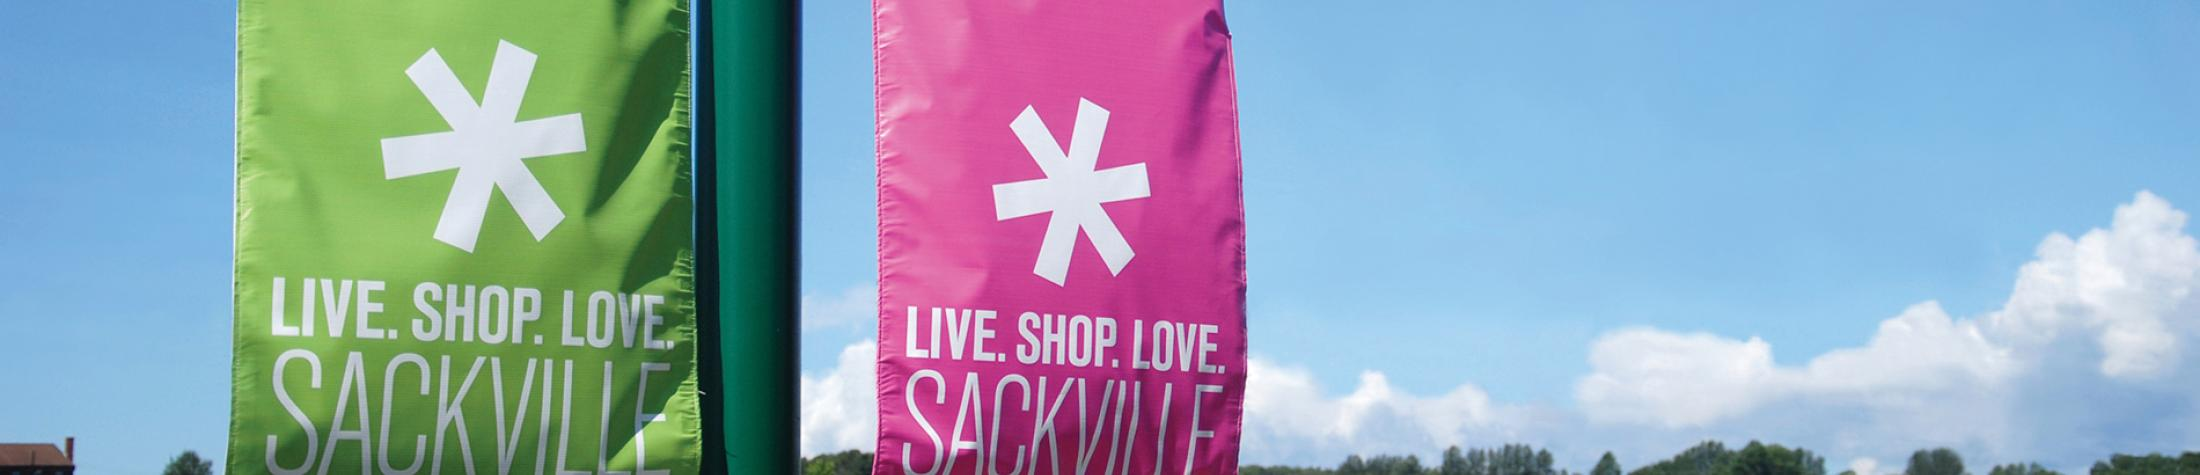 Live Shop Love in Sackville banners